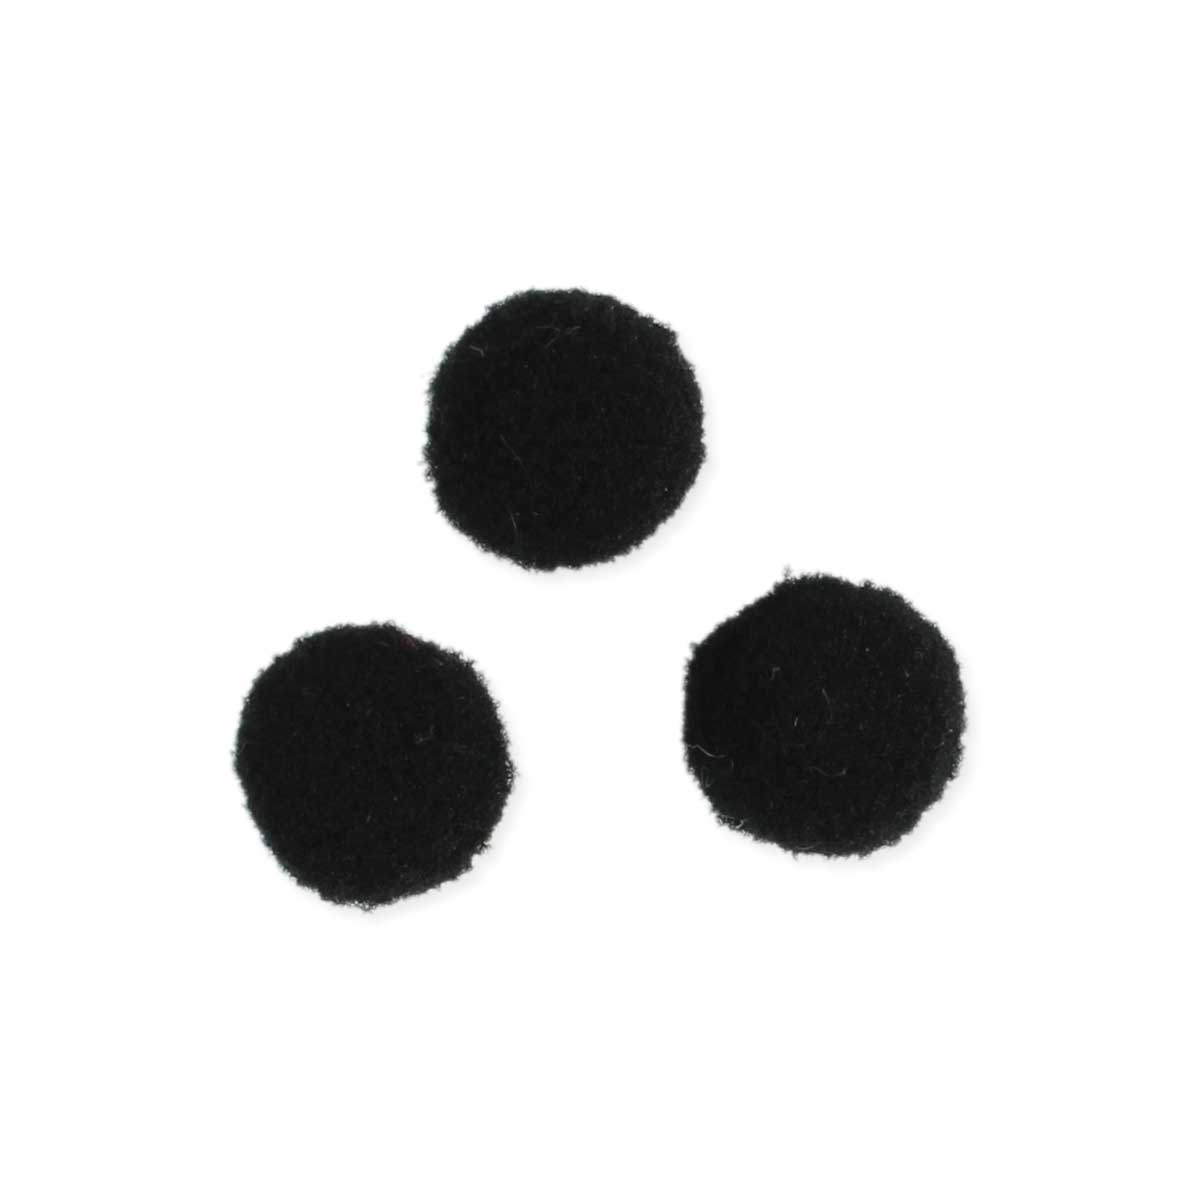 Set of 3 Black Felt Ball Diffuser Inserts